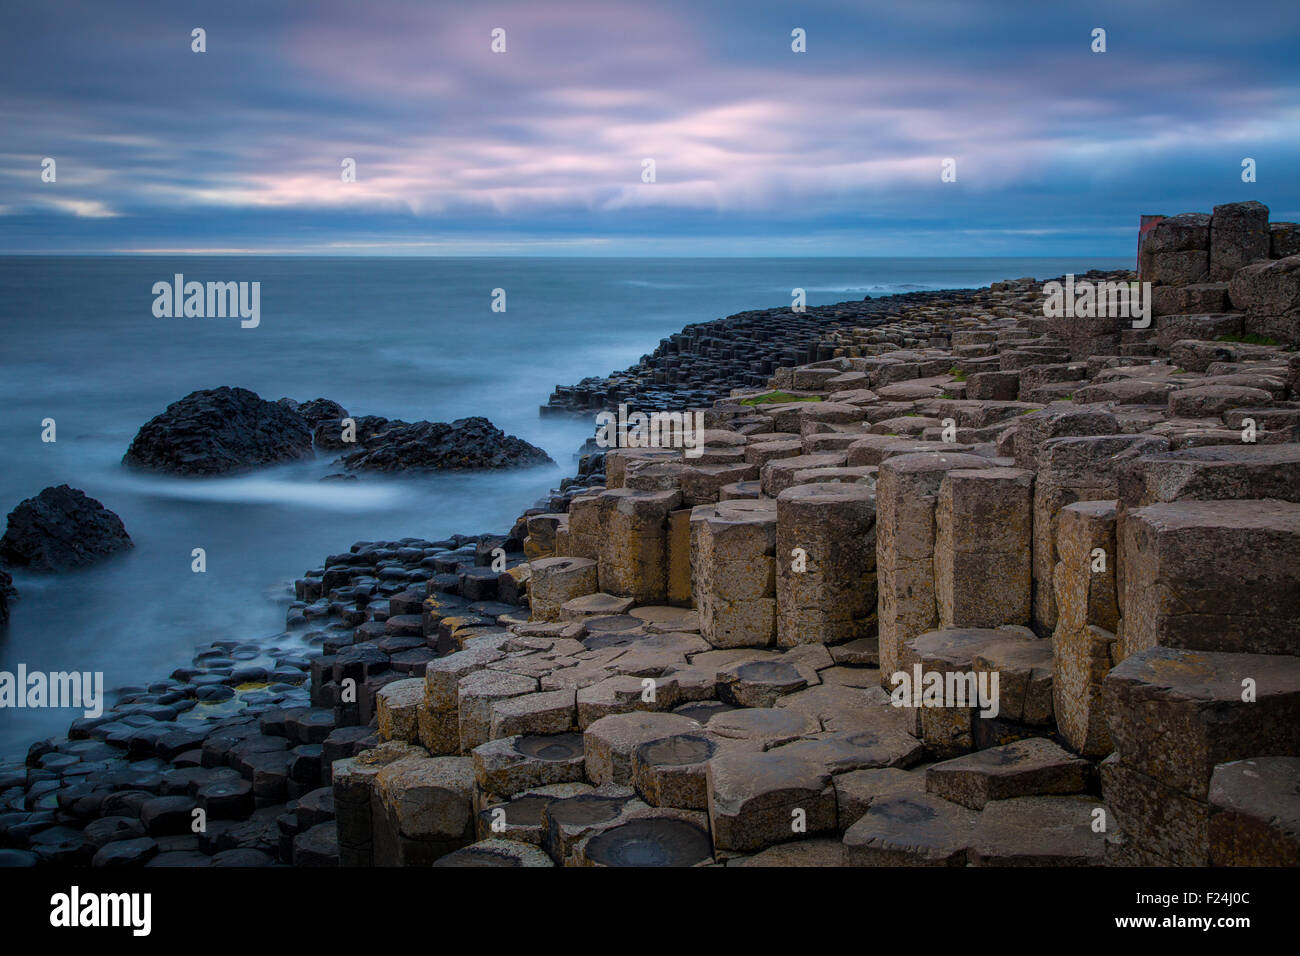 Twilight over the Giant's Causeway along the northern coast, County Antrim, Northern Ireland, UK Stock Photo